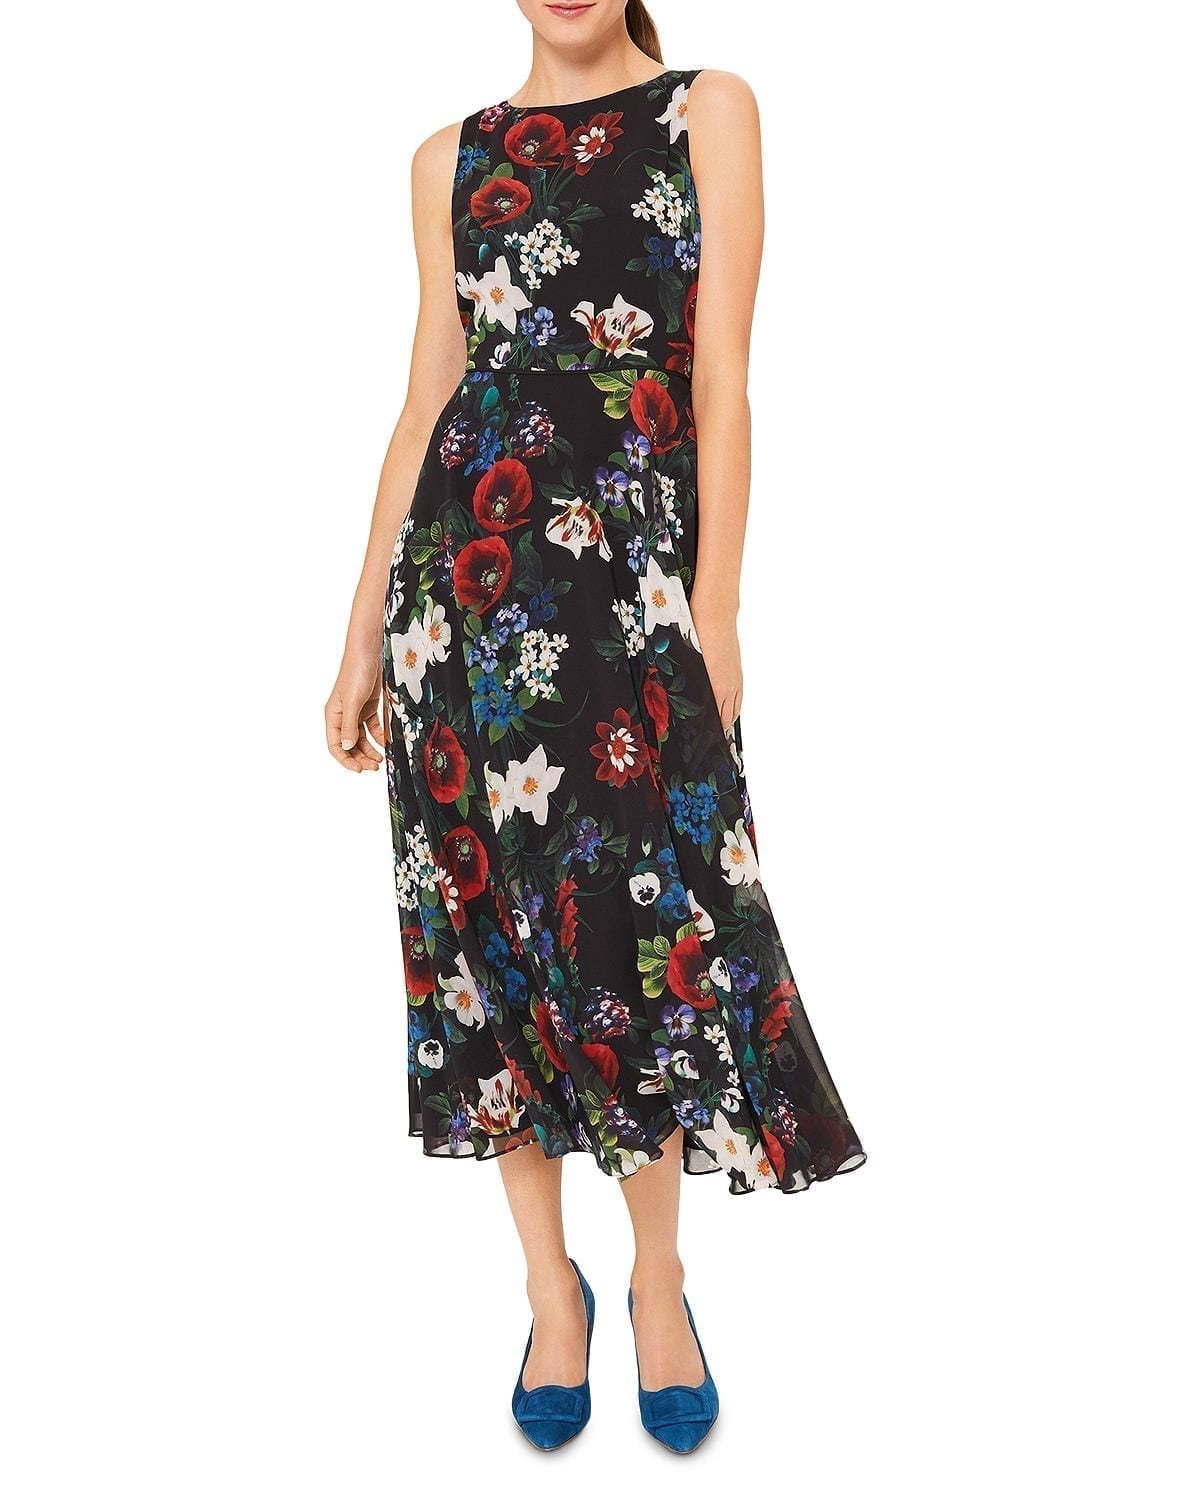 HOBBS LONDON Carly Floral Print Dress